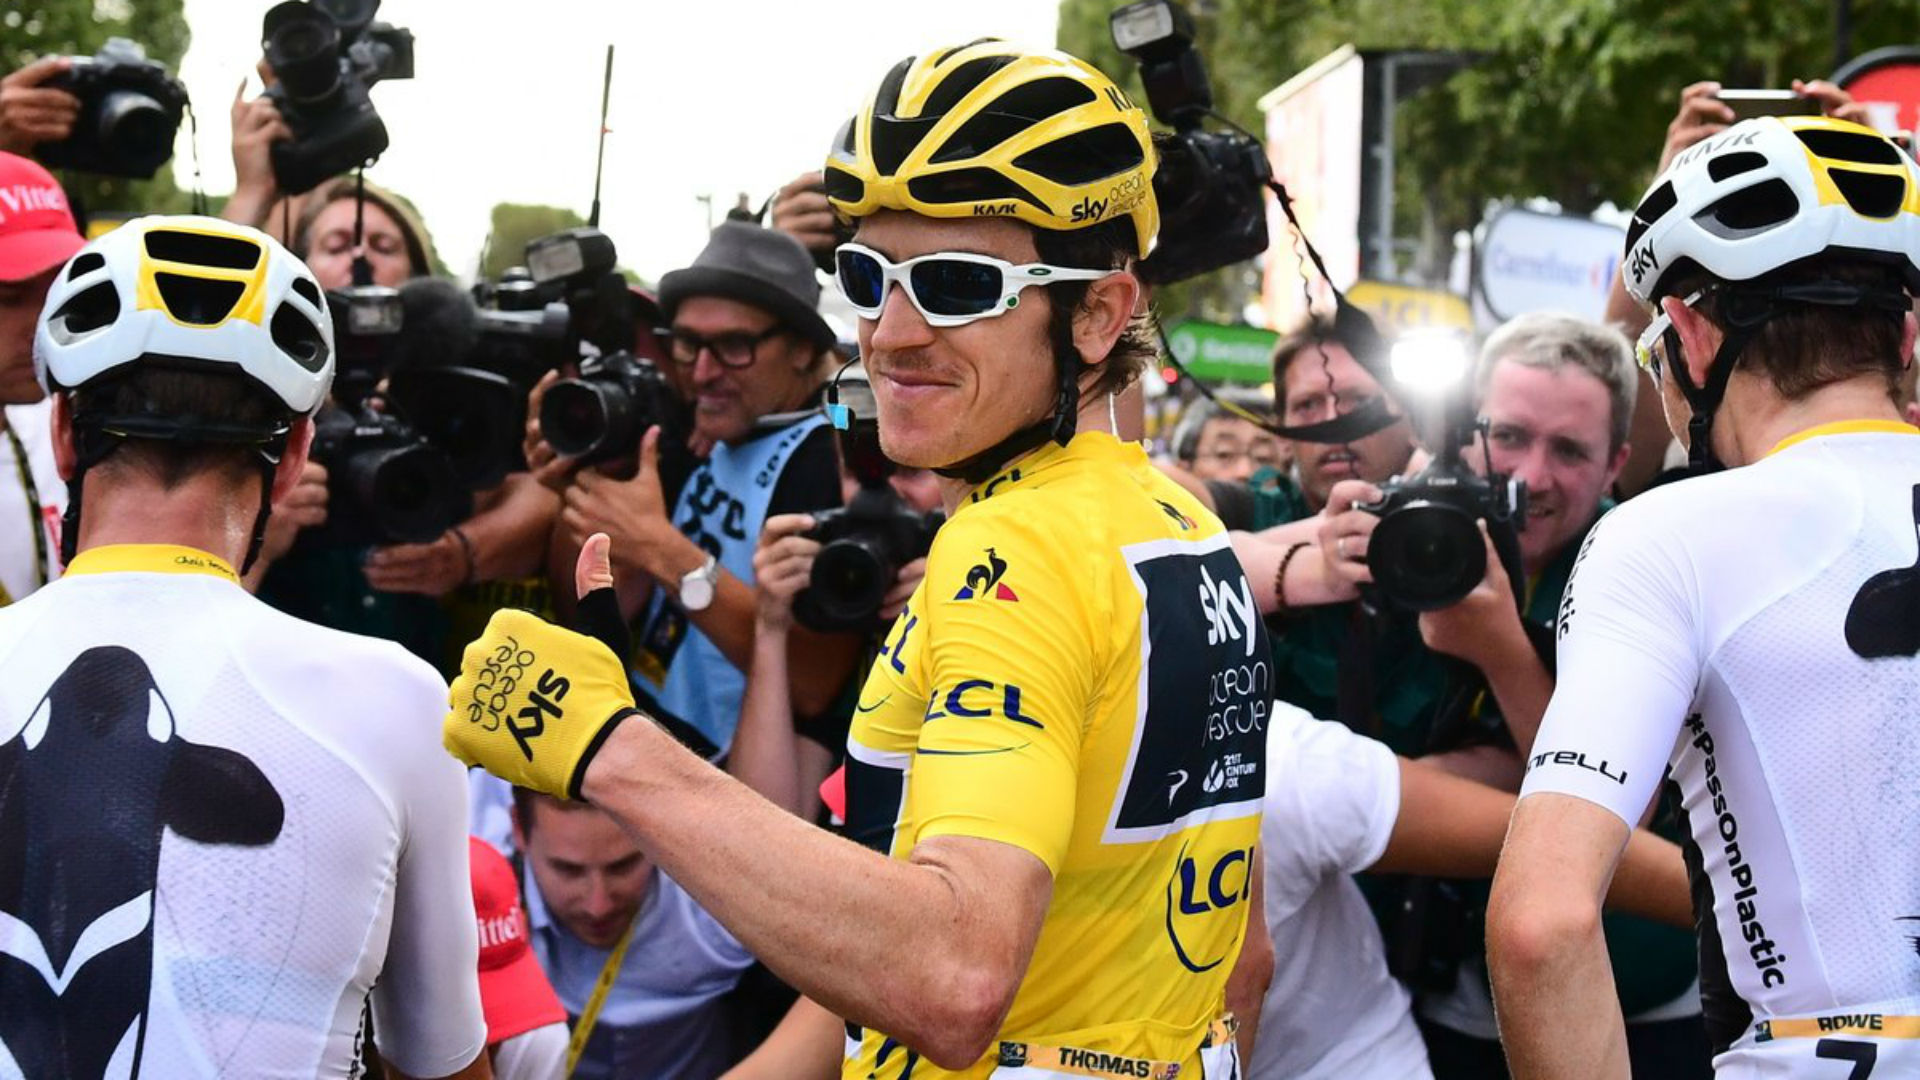 Tour de France 2019 by the numbers